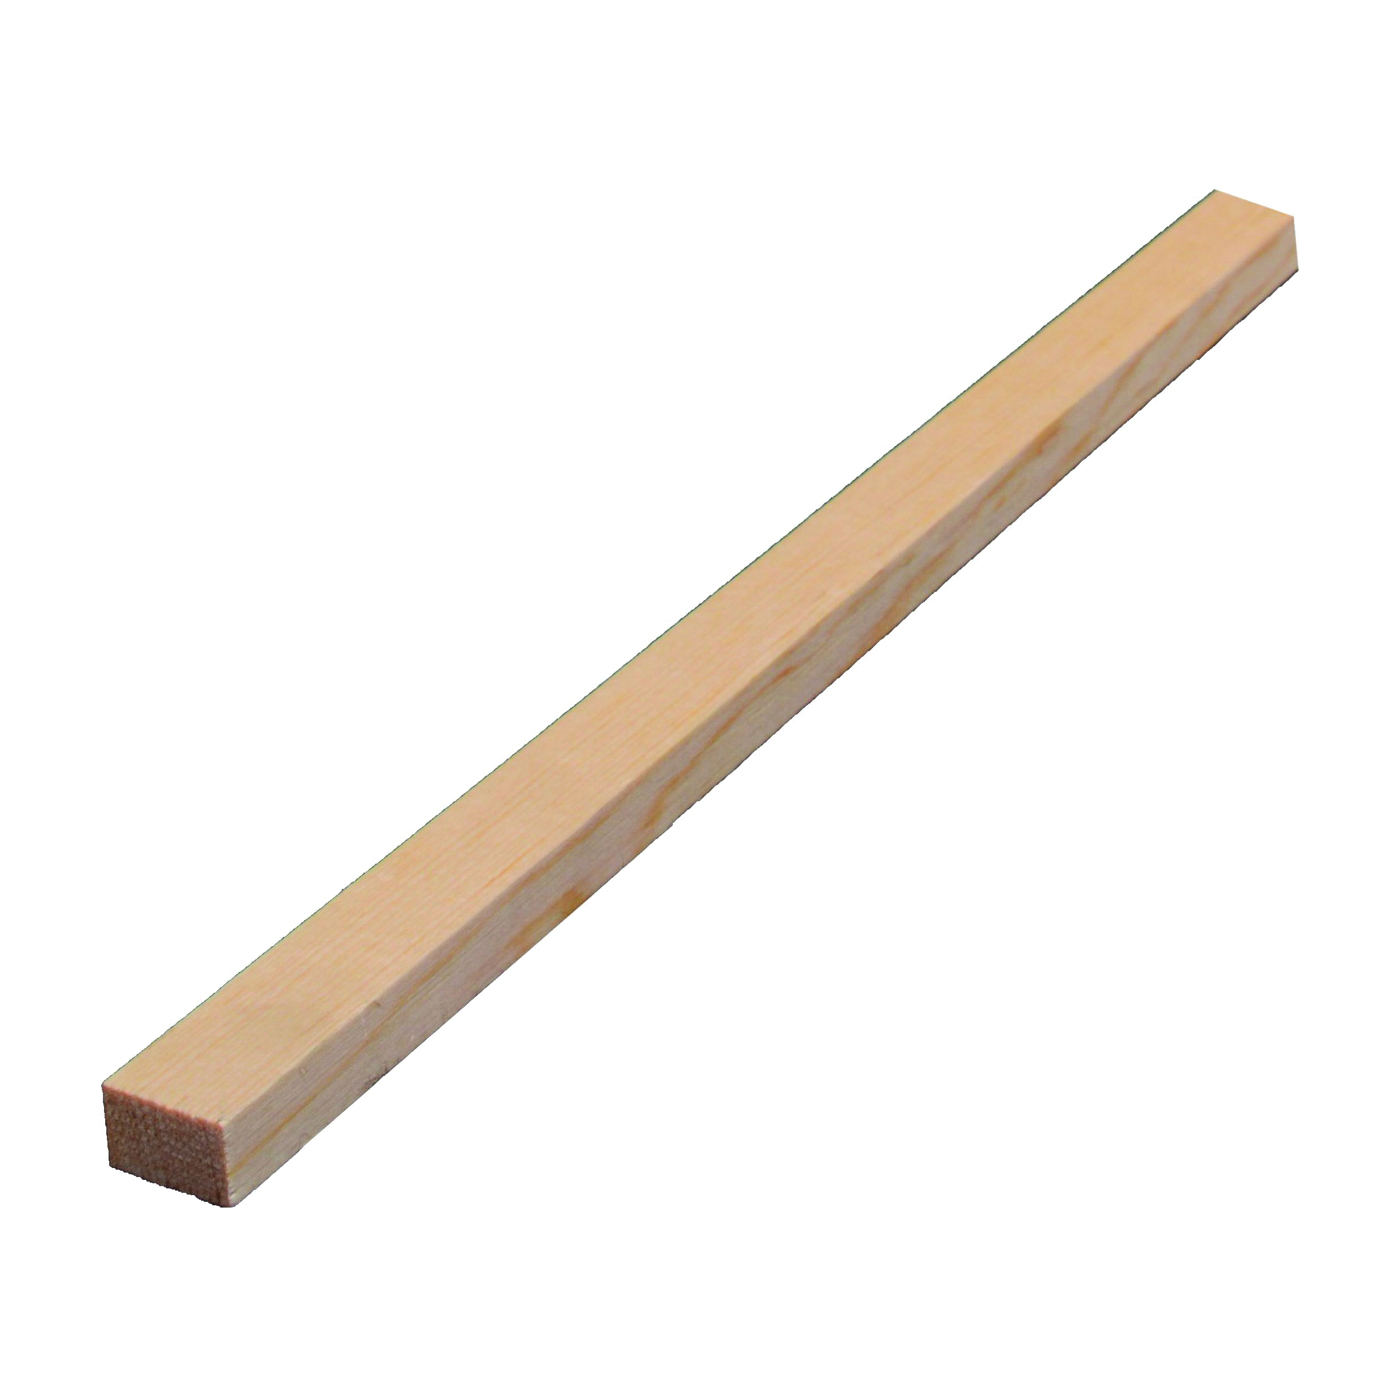 Picture of ALEXANDRIA Moulding 0W254-20096C1 Parting Stop Molding, 8 ft L, 3/4 in W, Pine